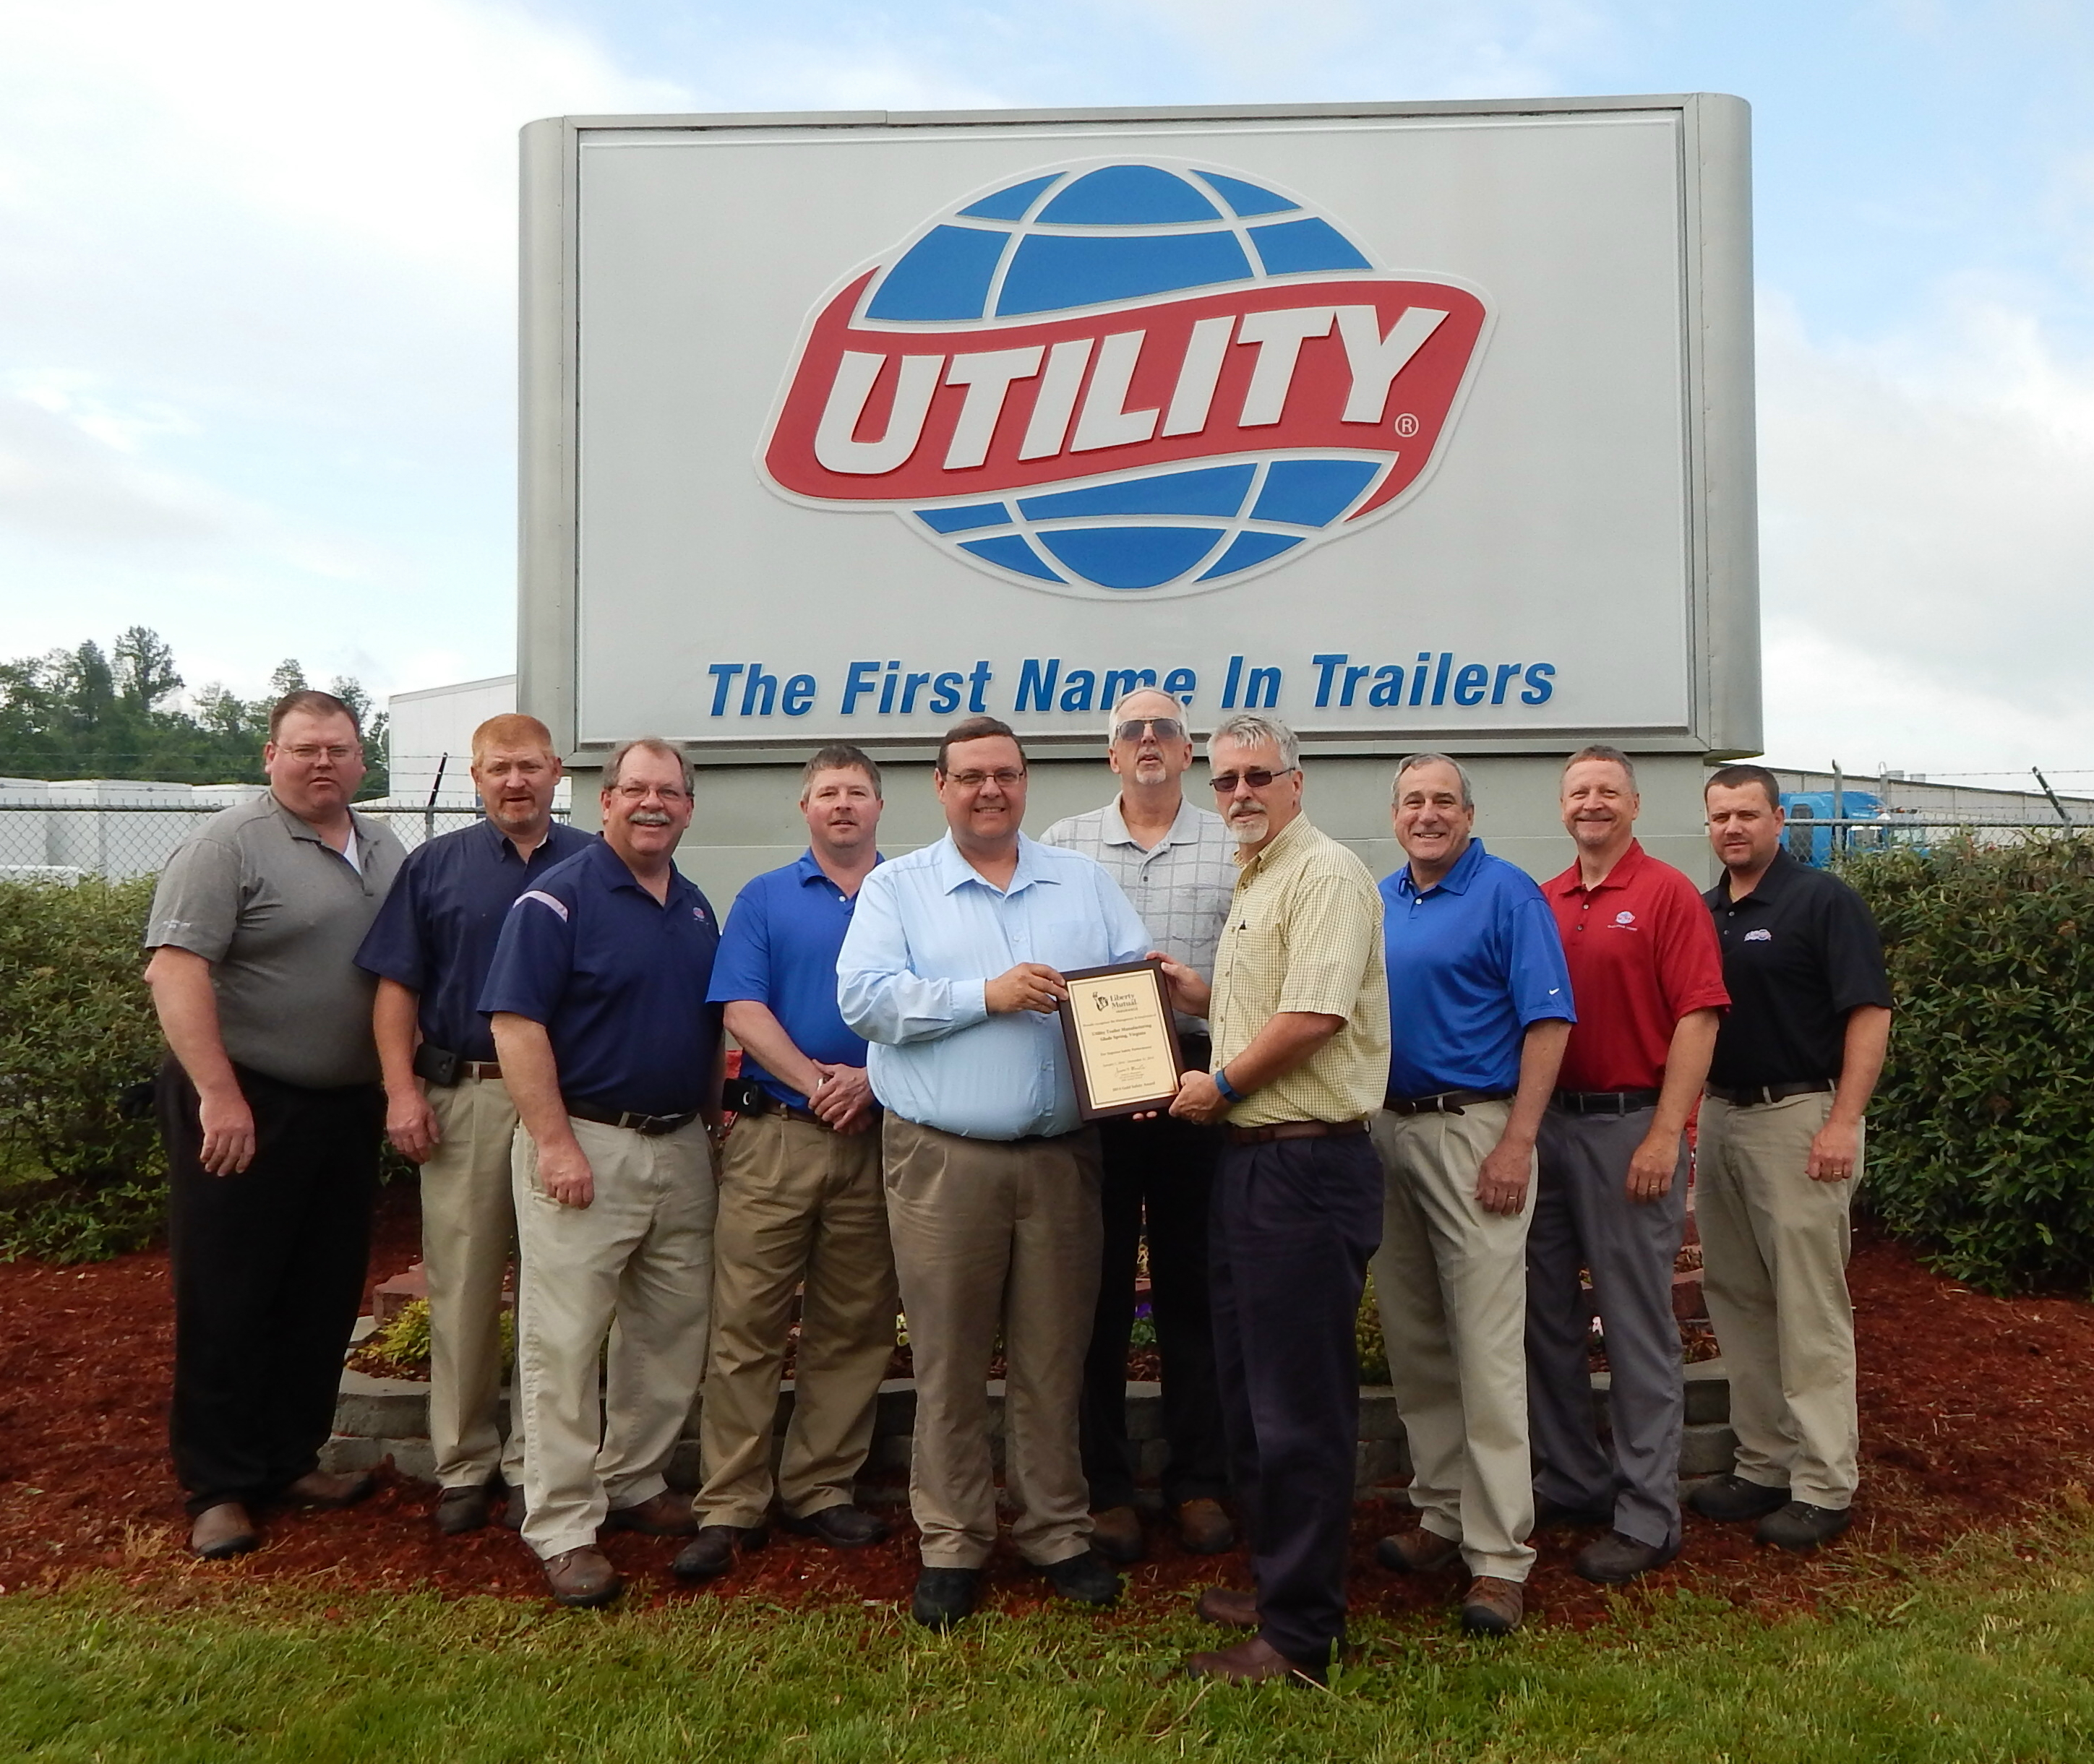 Utility's Glade Spring, Virginia Manufacturing Plant Receives Gold ...